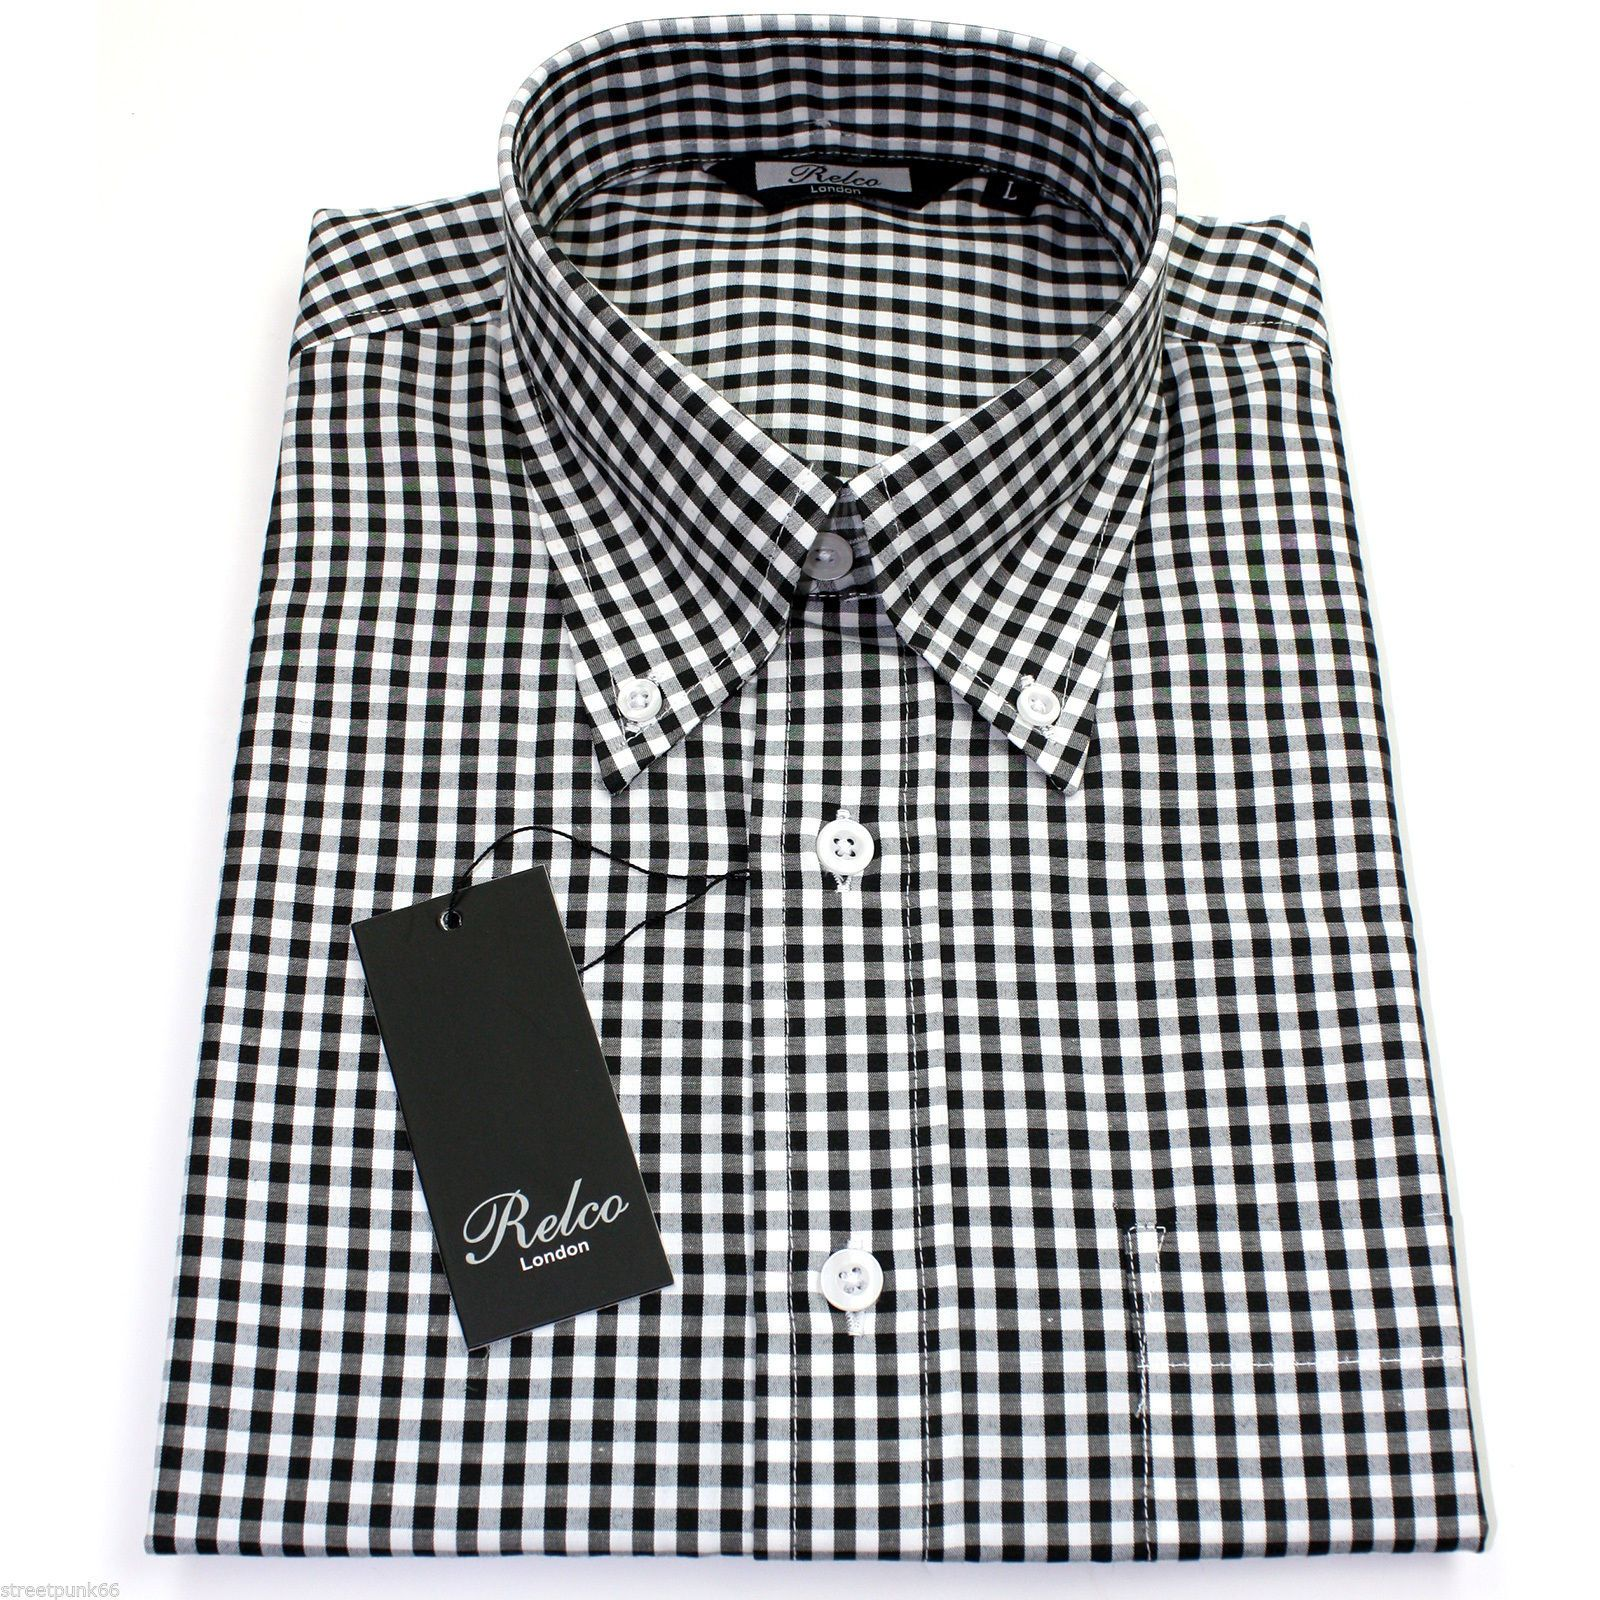 Visit Macy's today for a Gingham Shirt including Men's Gingham Shirt, Women's Gingham Shirt and Kids Gingham Shirt.